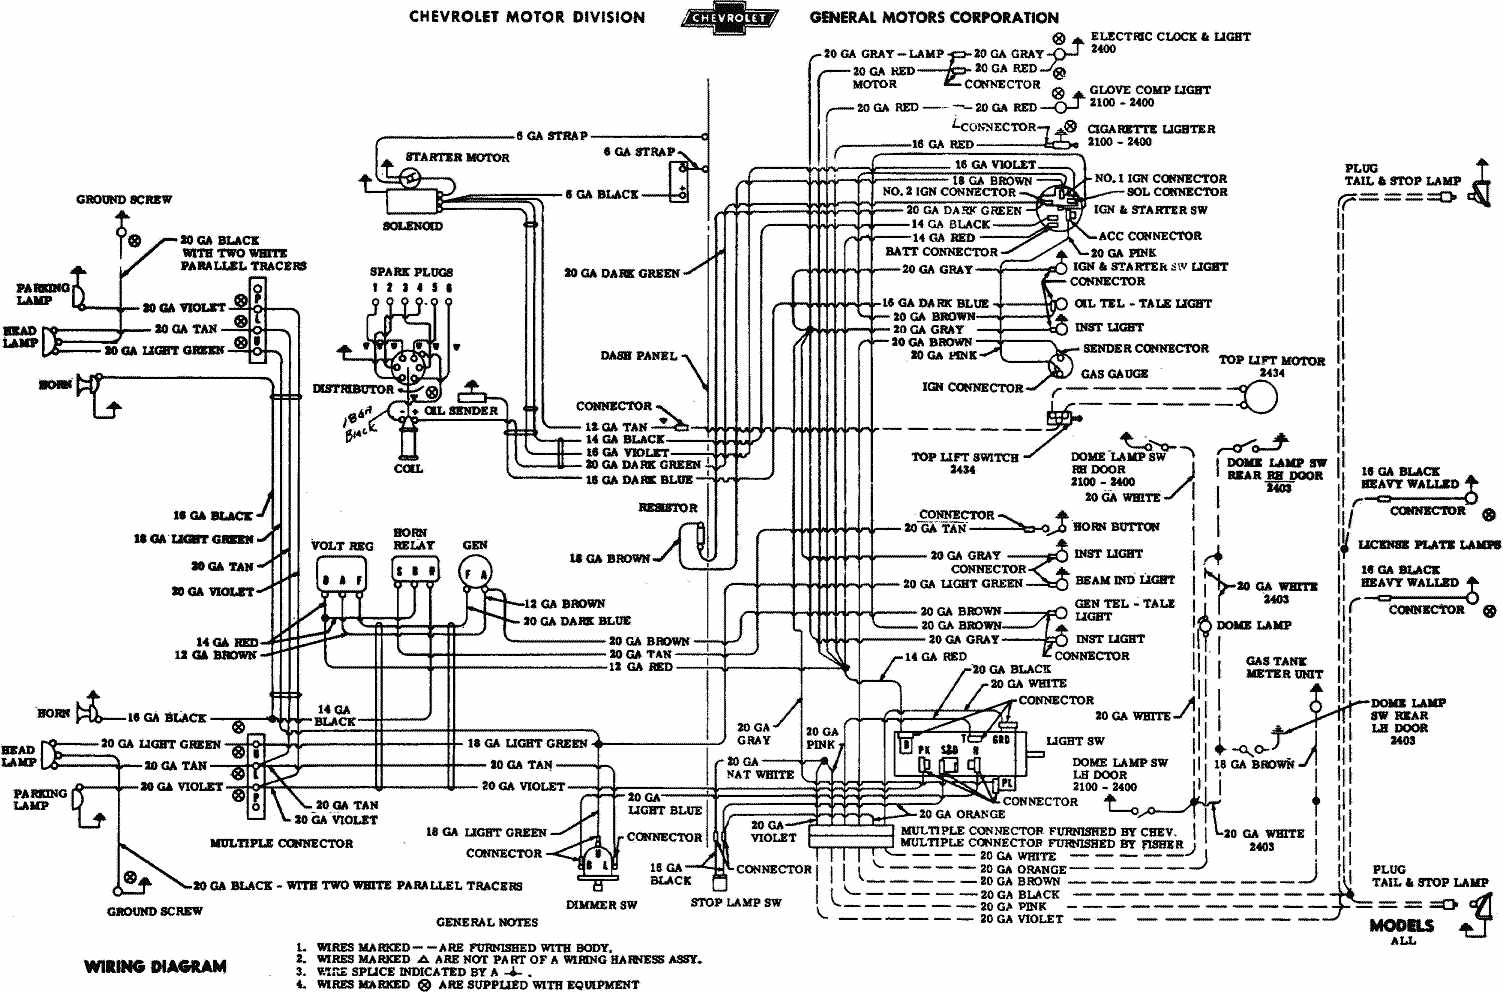 Wiring Diagram Of 1955 Chevrolet on 1963 Ford Fairlane Wiring Diagram